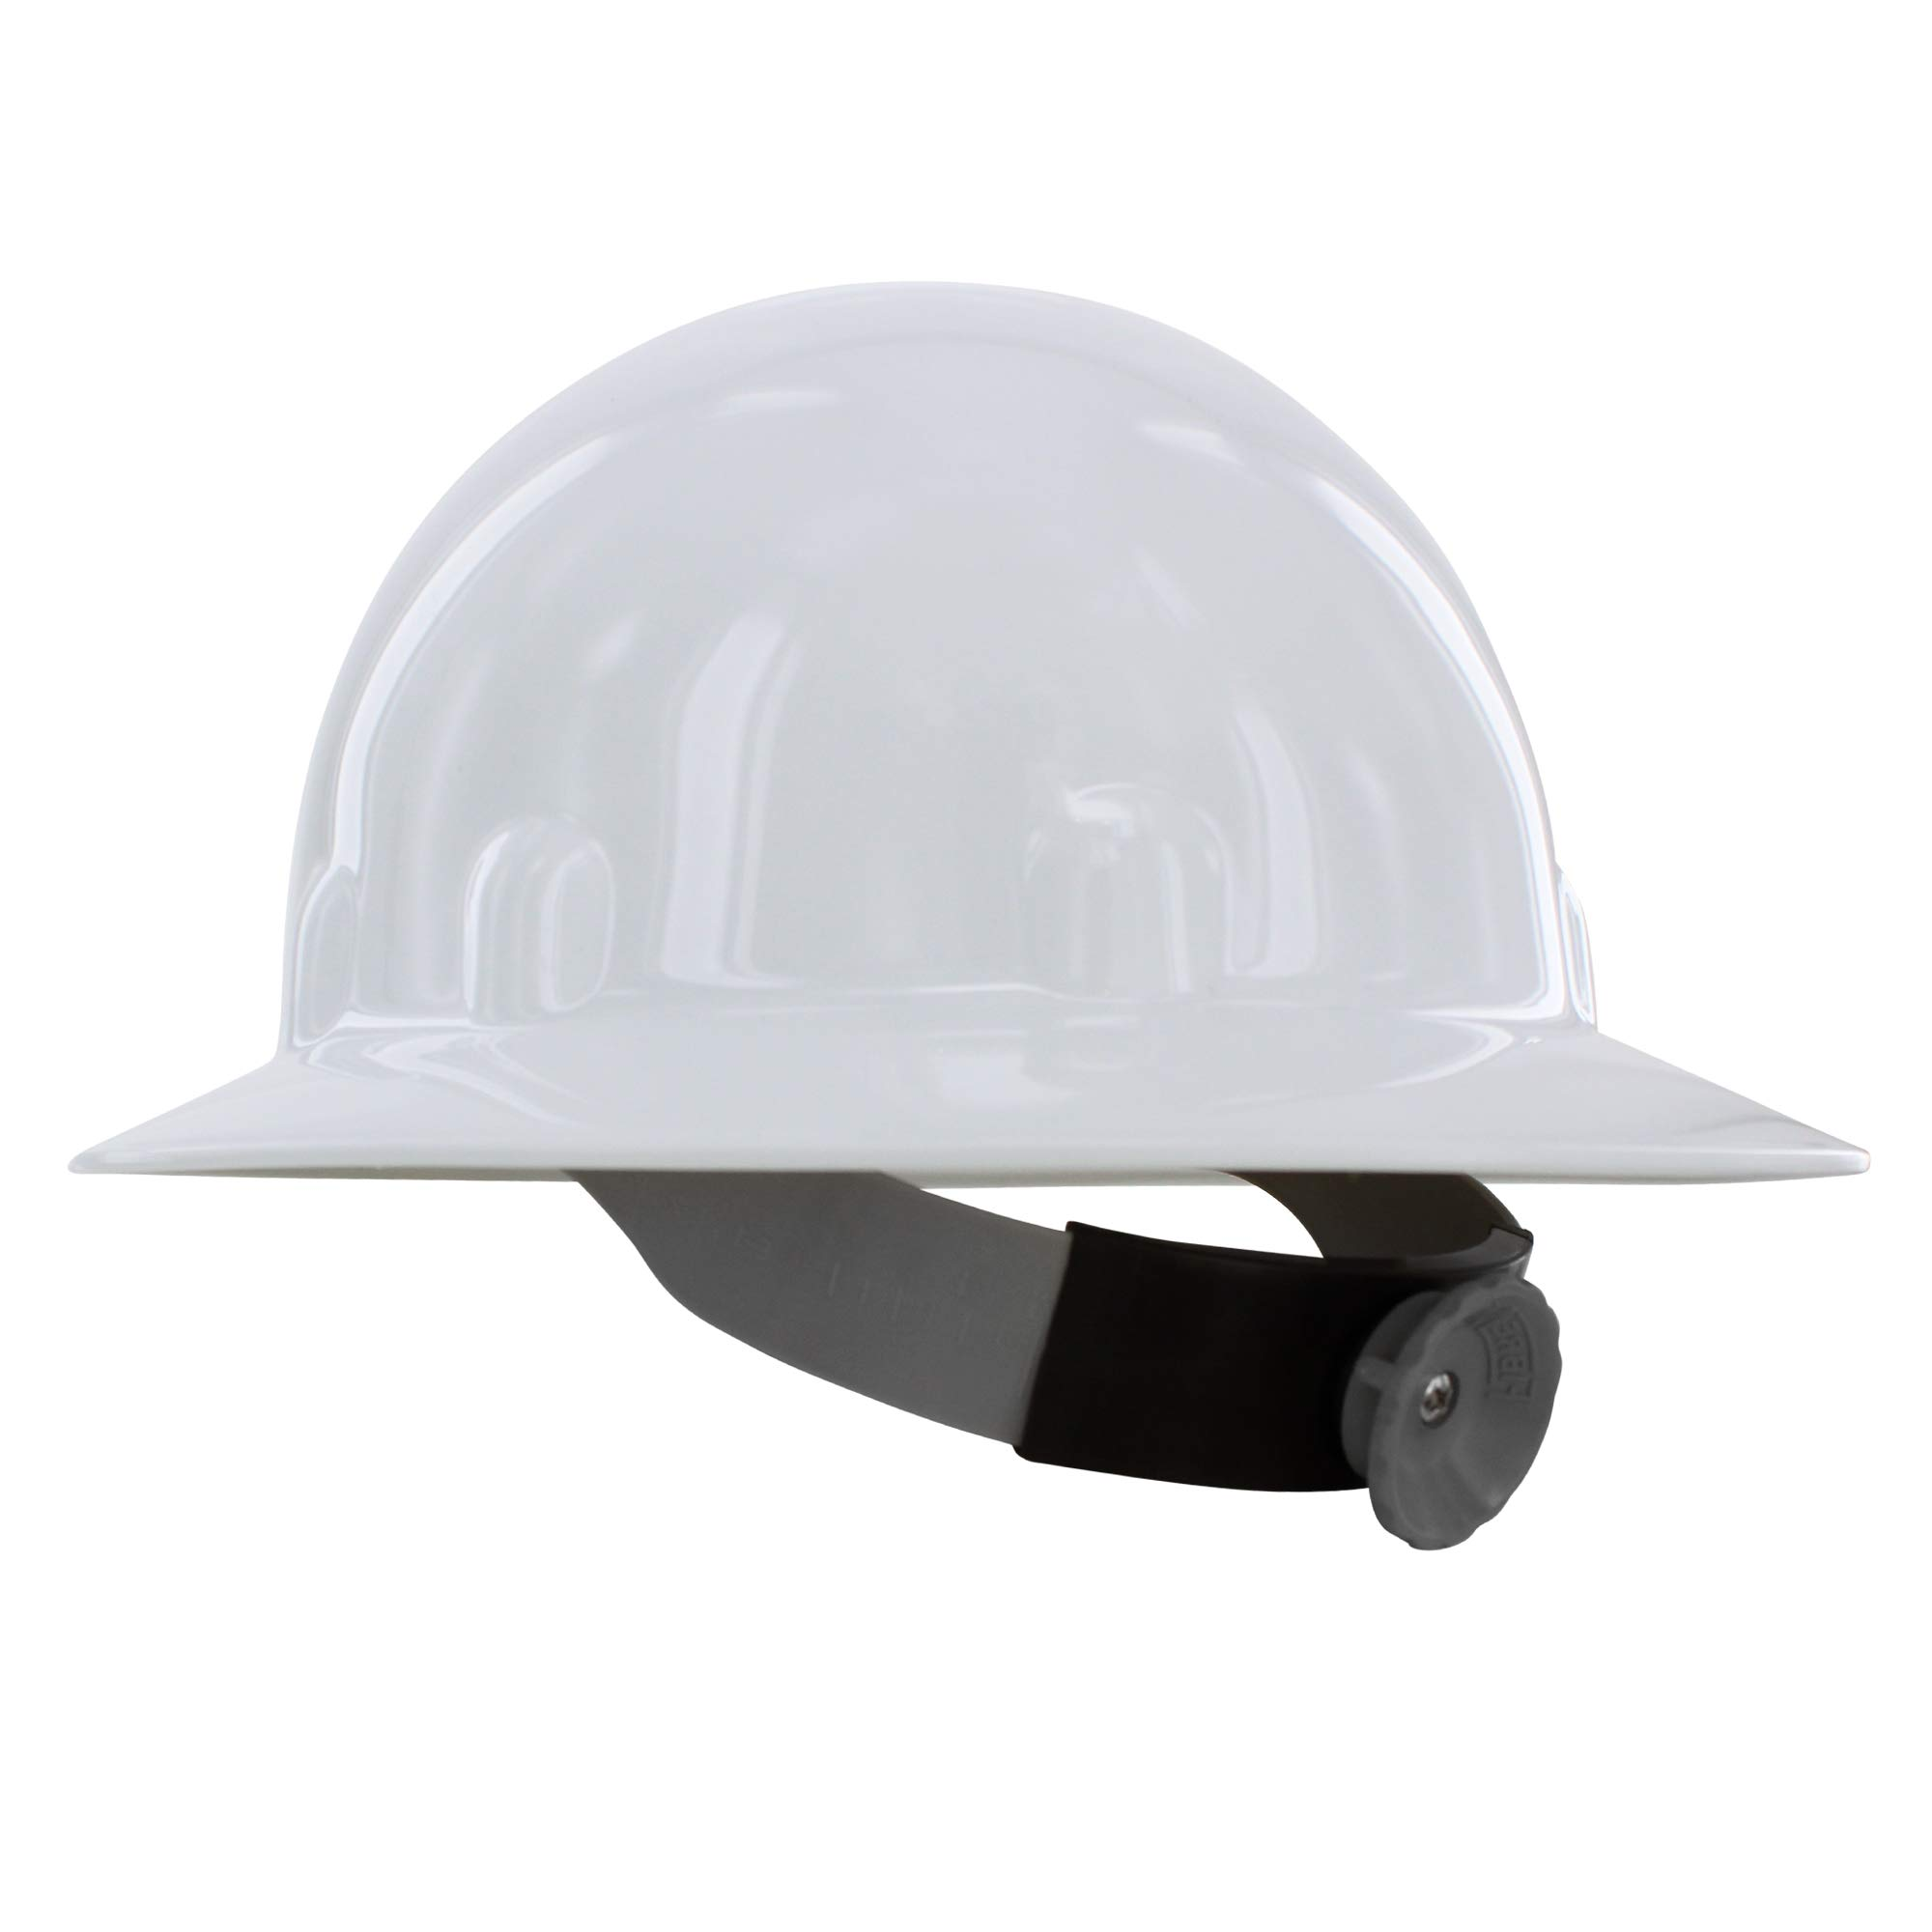 Fibre-Metal by Honeywell E1RW Supereight Thermoplastic Full Brim Hard Hat with 8 Pt. Ratchet Suspension, White by Honeywell (Image #1)